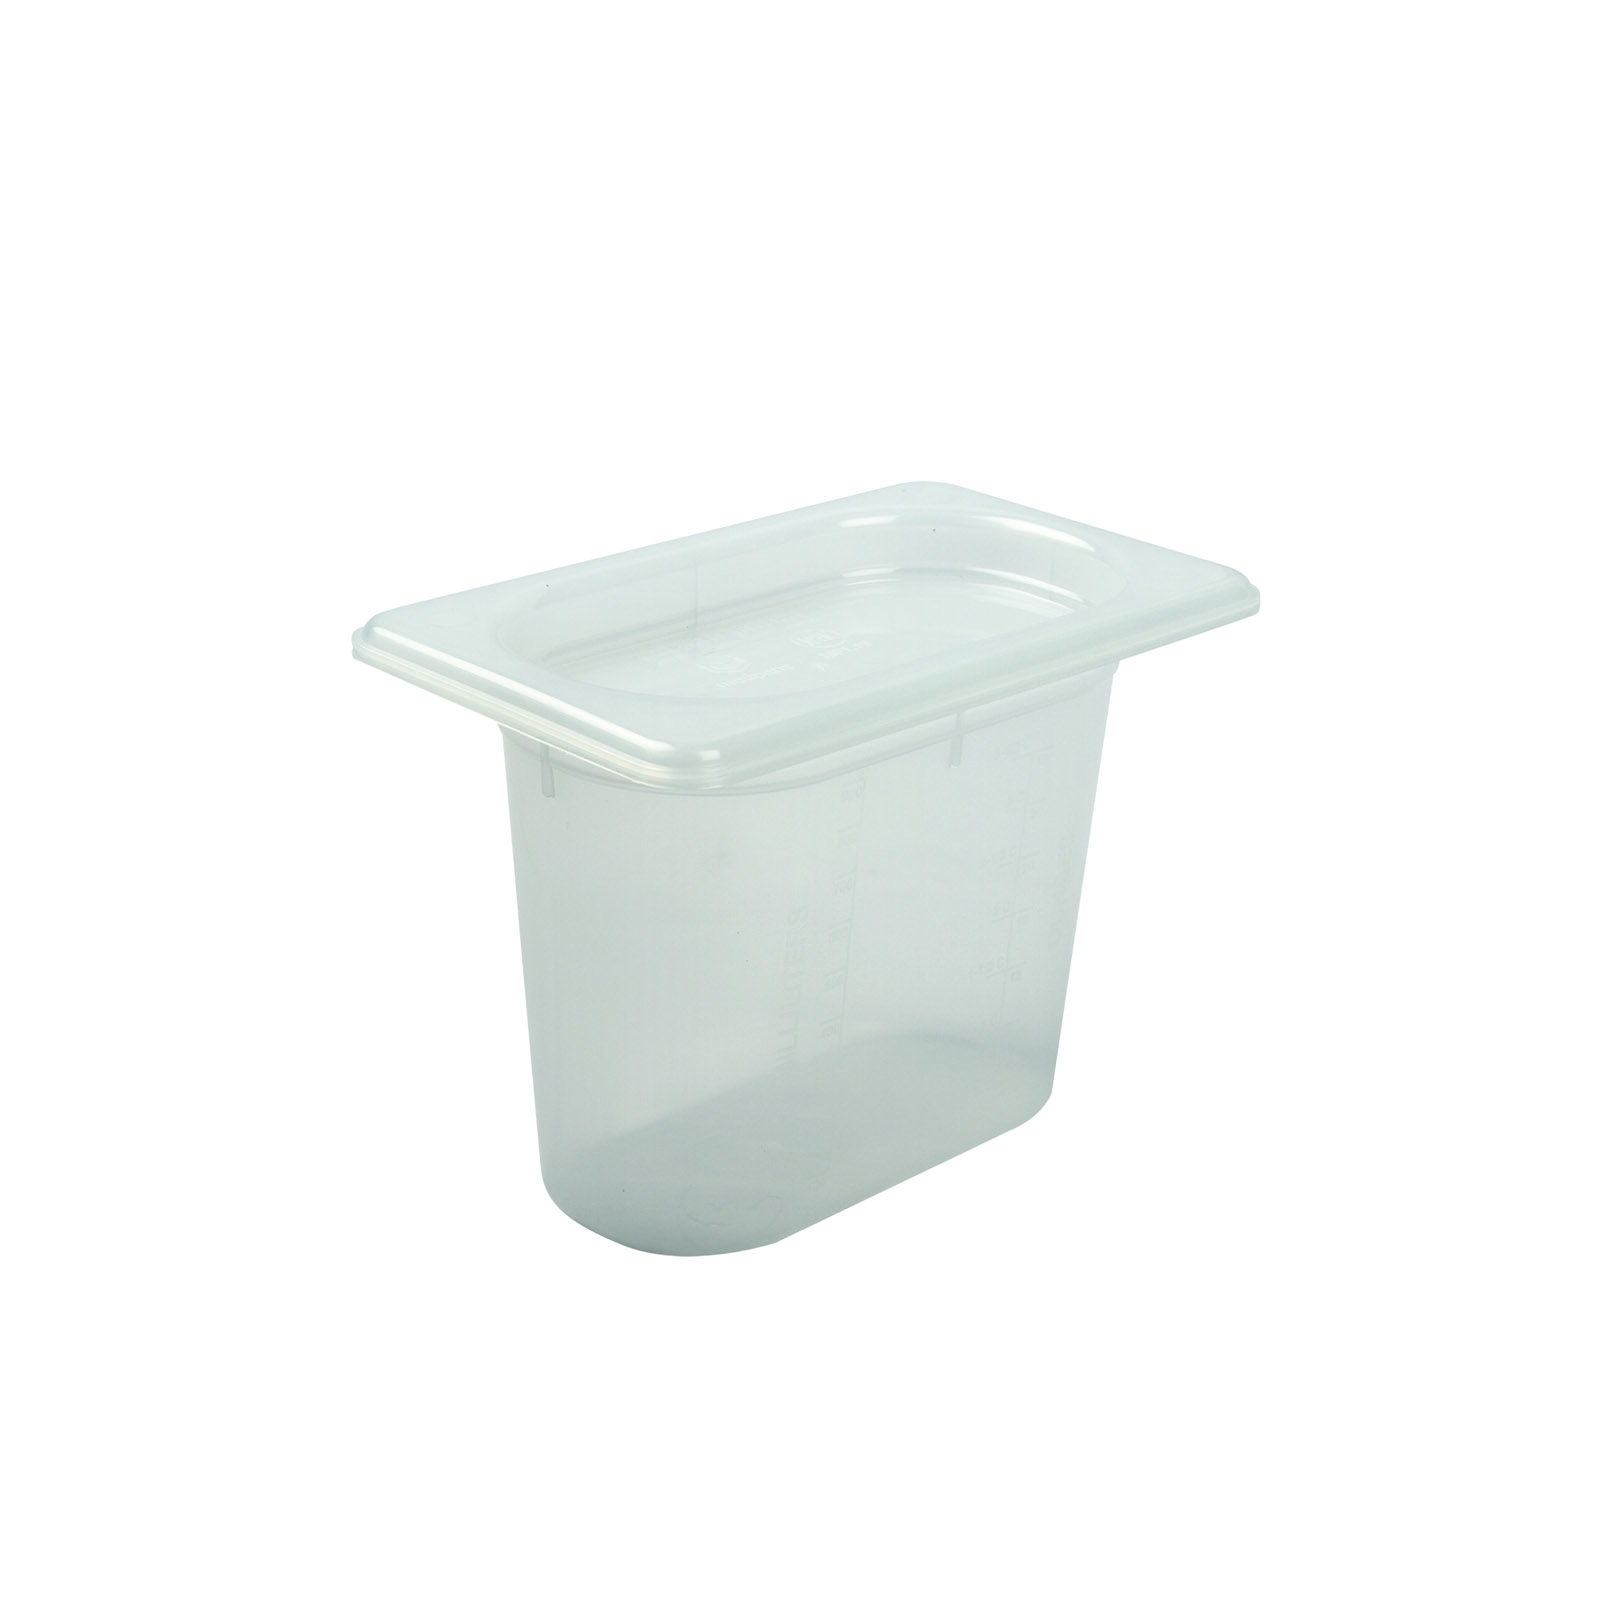 San Jamar MP19RD food pan, plastic